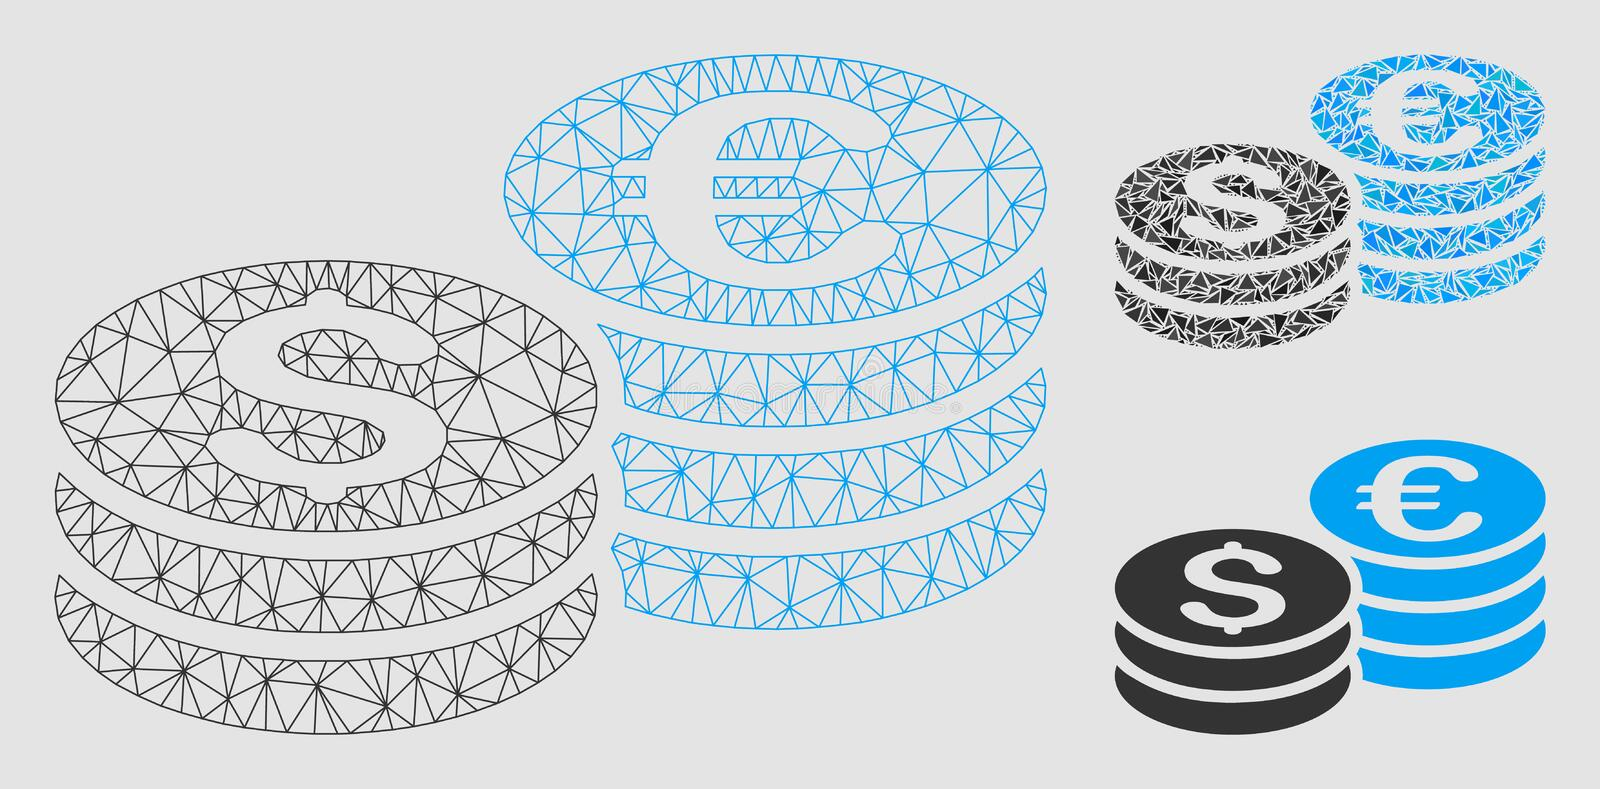 Dollar and Euro Coin Stacks Vector Mesh Network Model and Triangle Mosaic Icon royalty free illustration